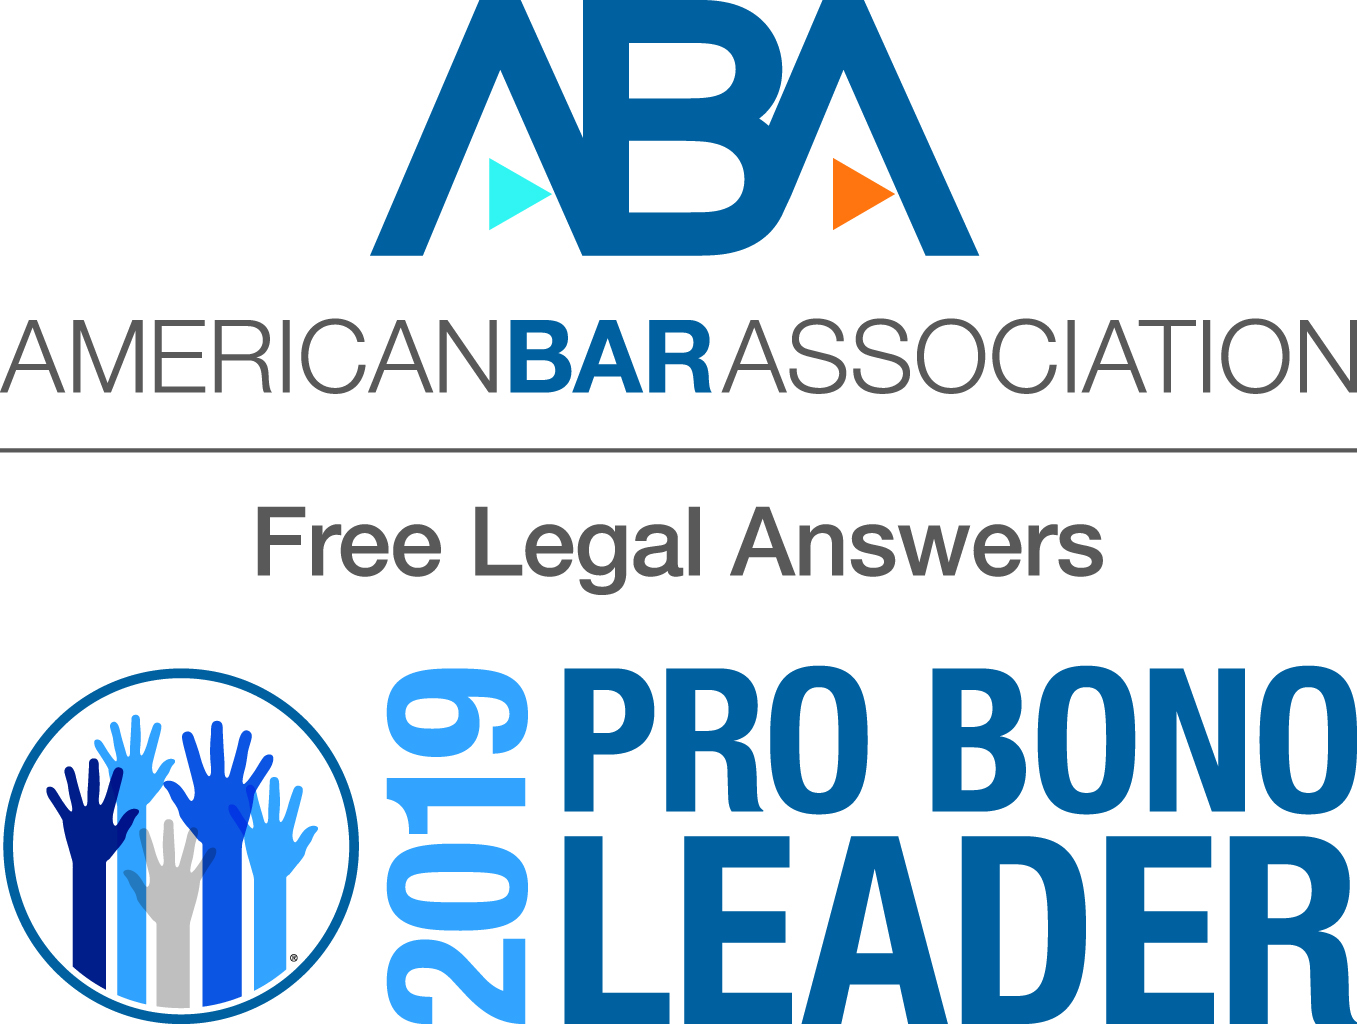 Baker Donelson - ABA Free Legal Answers 2019 Pro Bono Leader